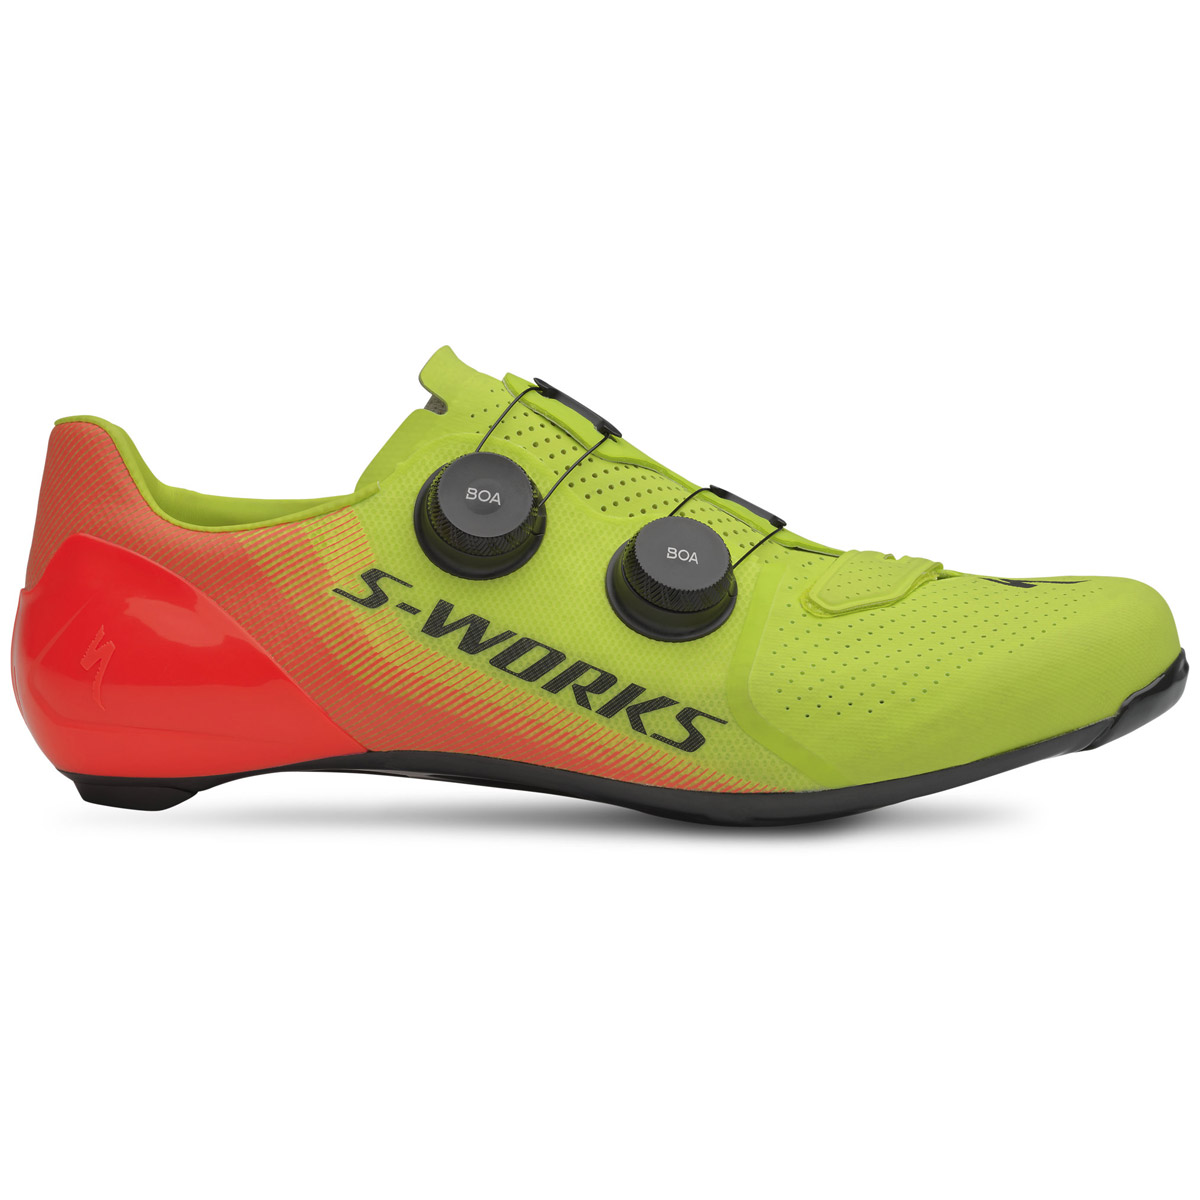 Specialized S-Works 7 Ltd shoes Hyper green acid lava